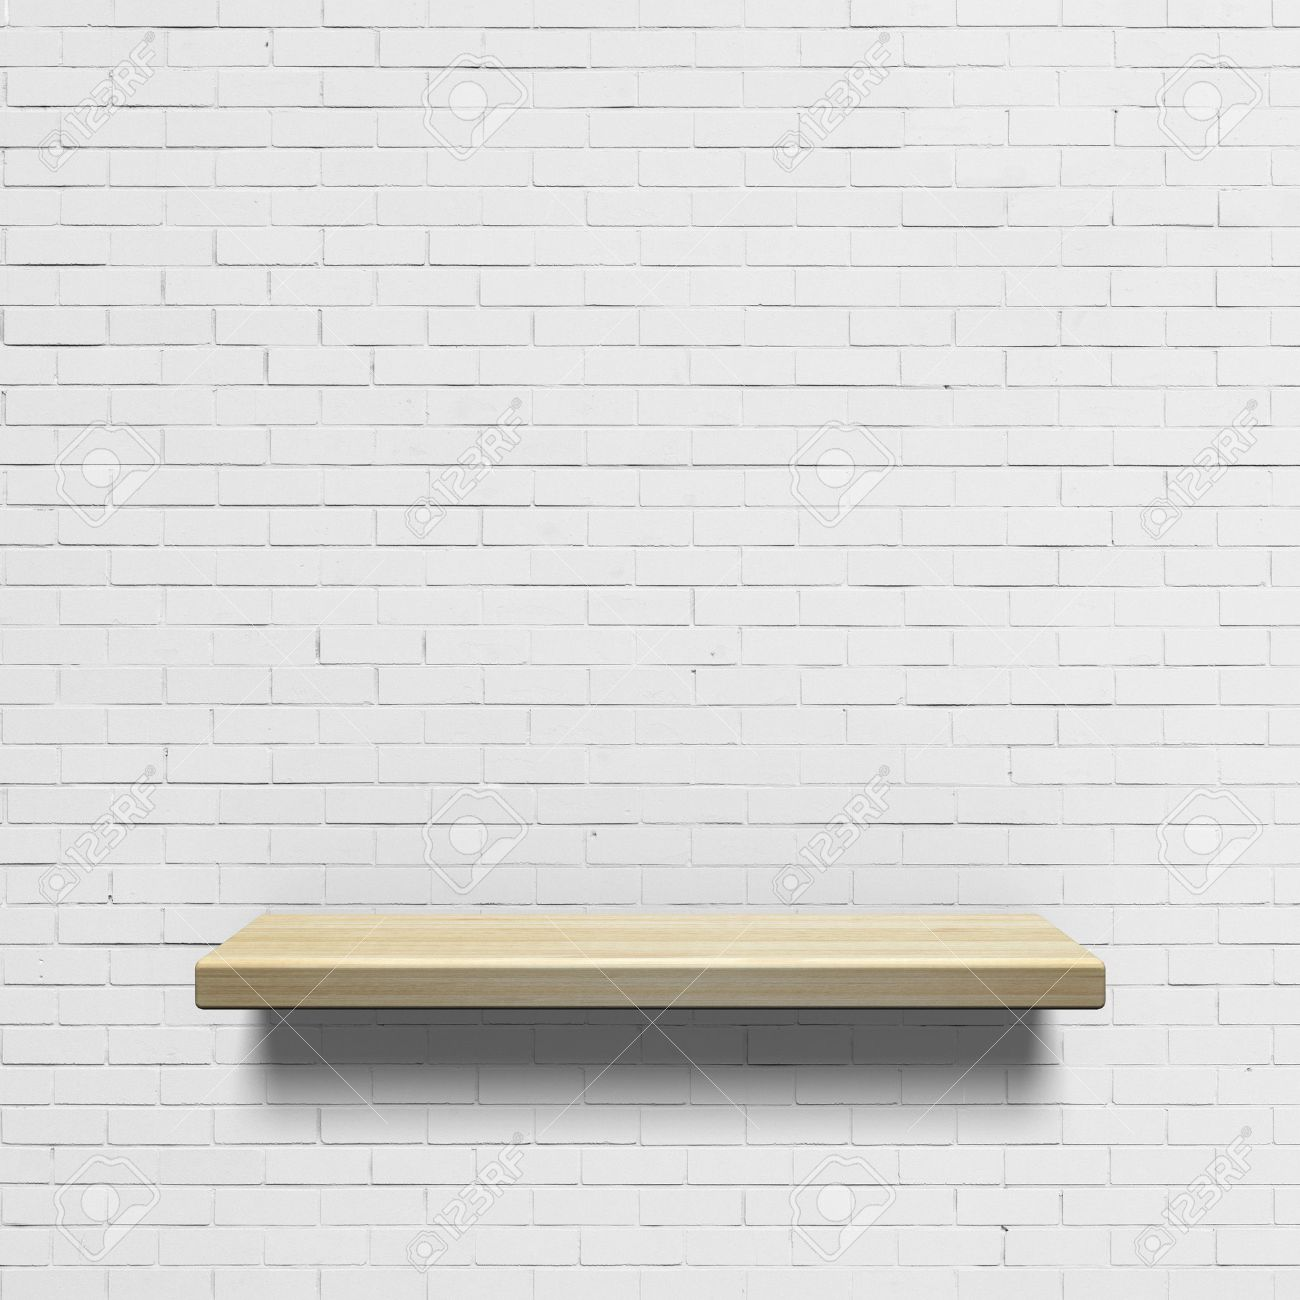 Wooden shelf on a white brick wall Stock Photo - 30409765